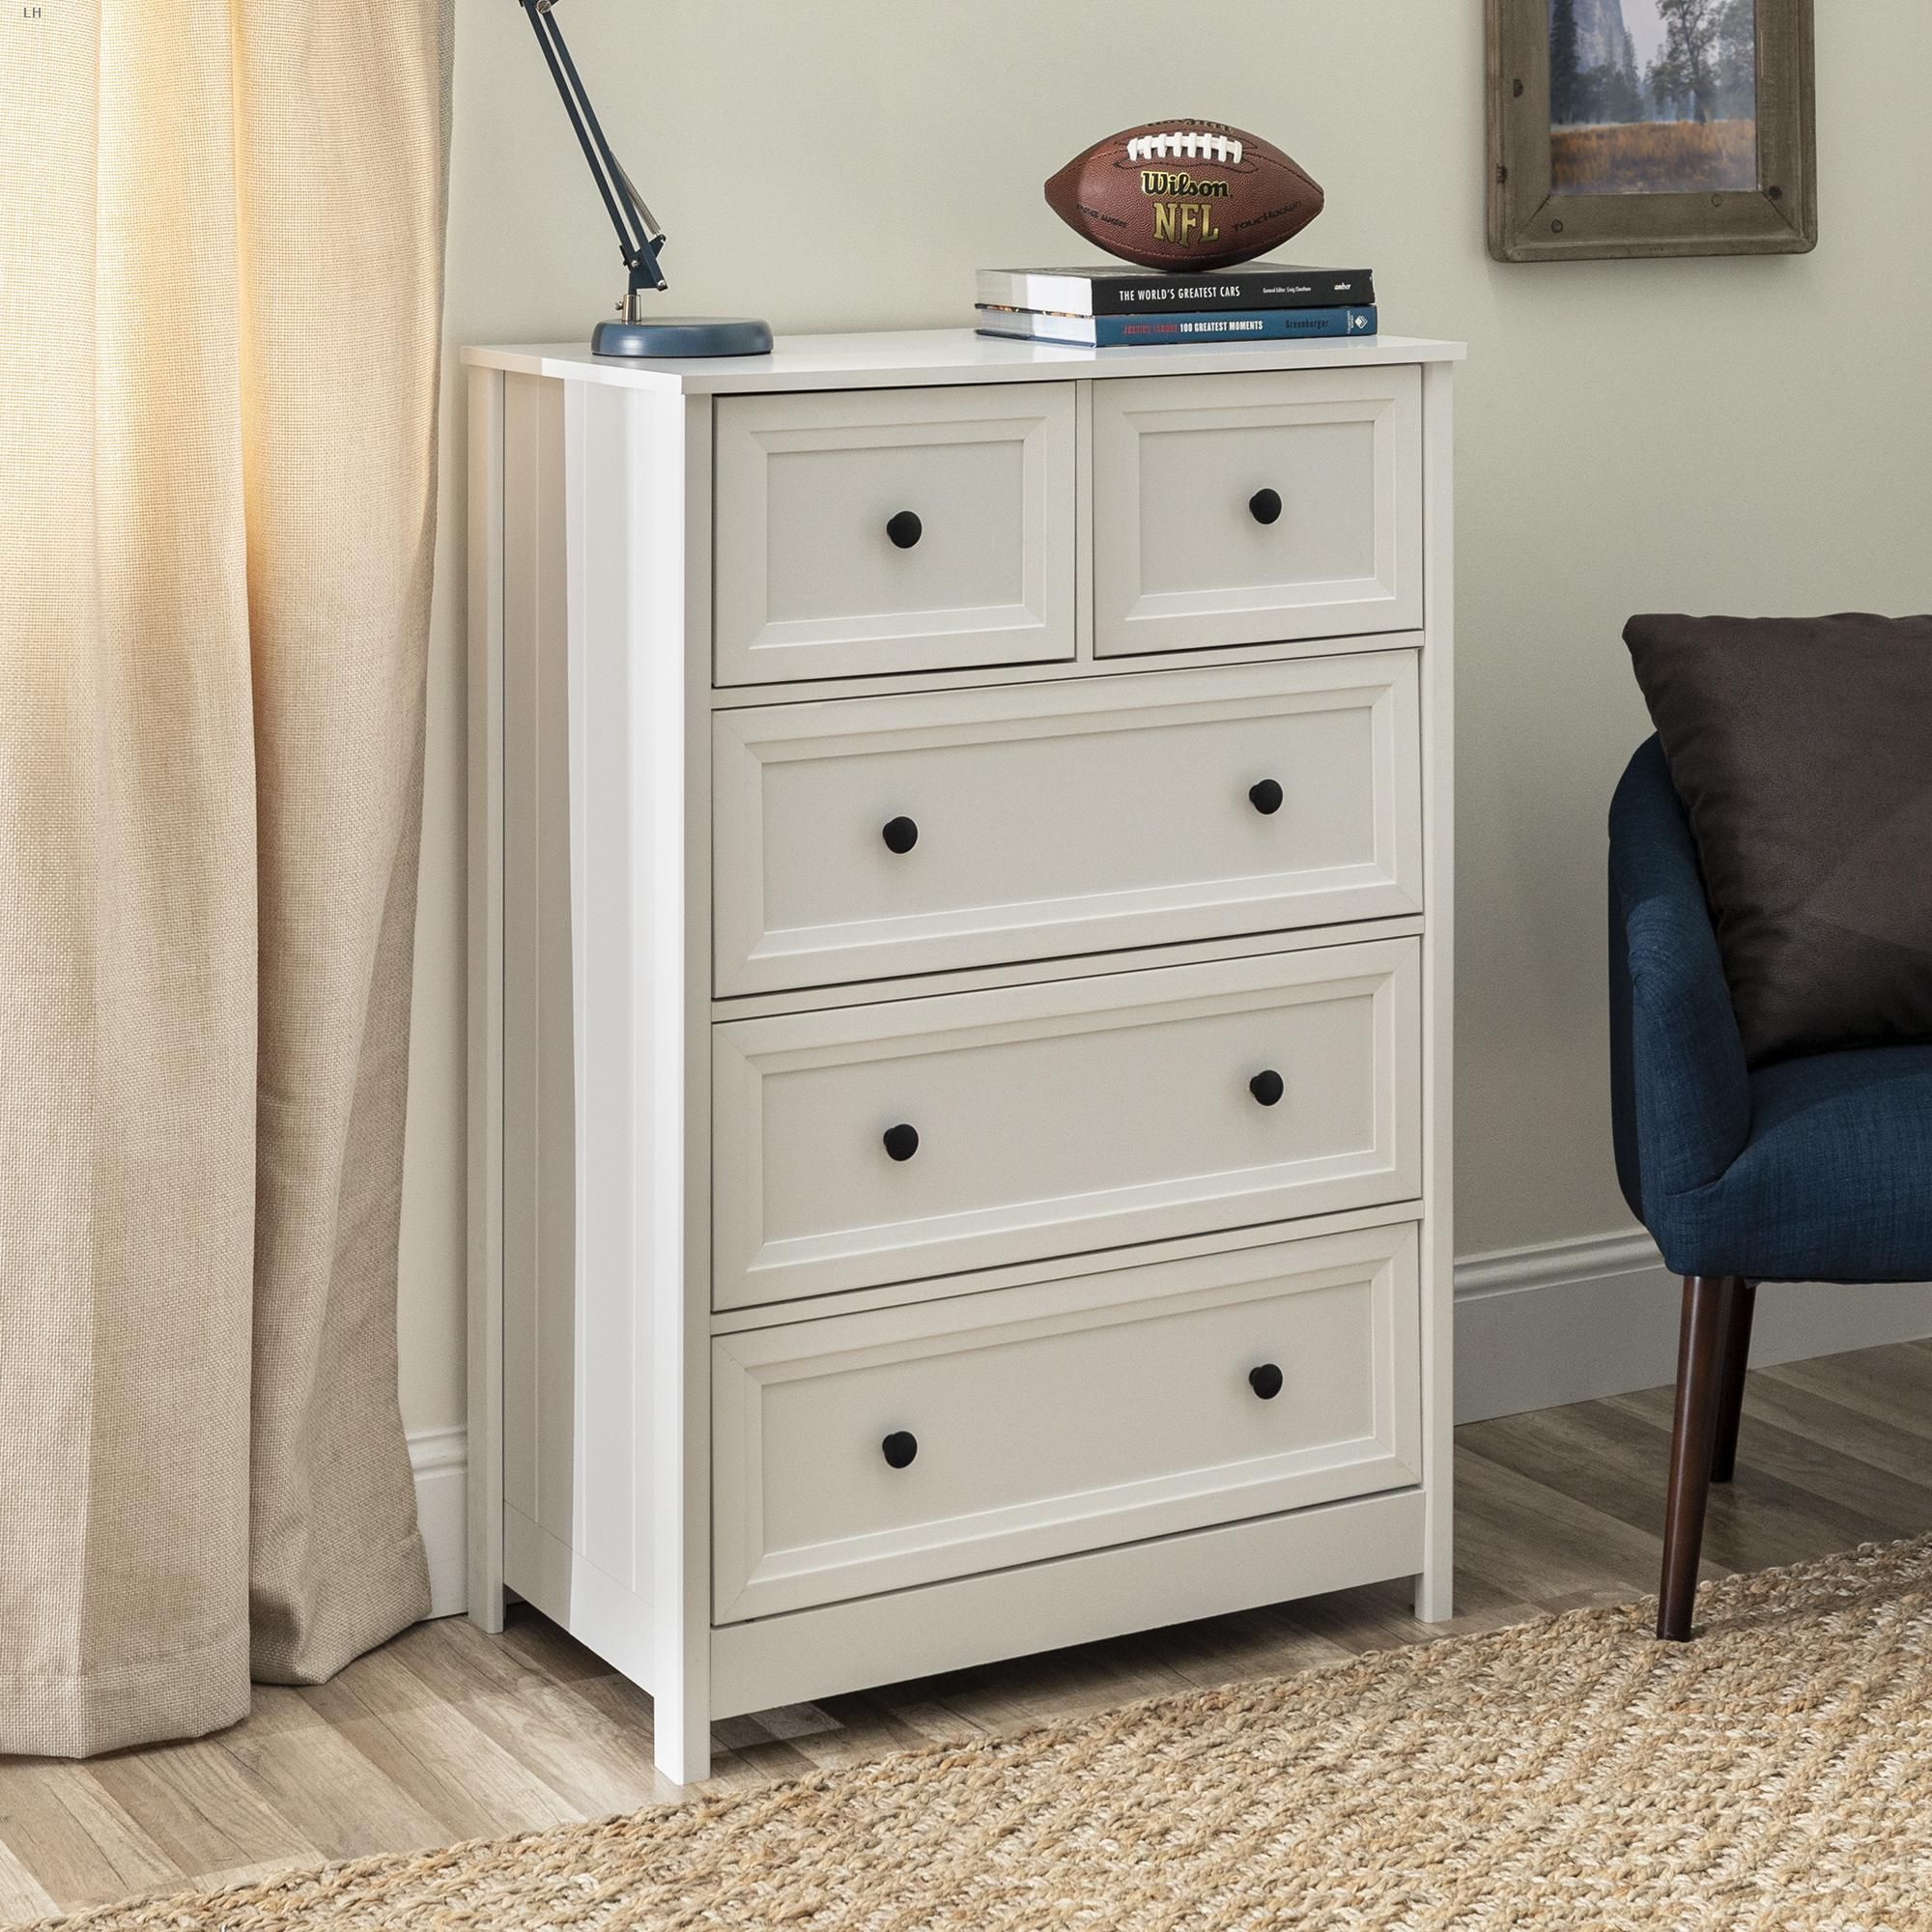 Manor Park Classic Style 5 Drawer Grooved Dresser White Dresser Traditional Dressers Dresser As Nightstand Classic Style [ 2000 x 2000 Pixel ]